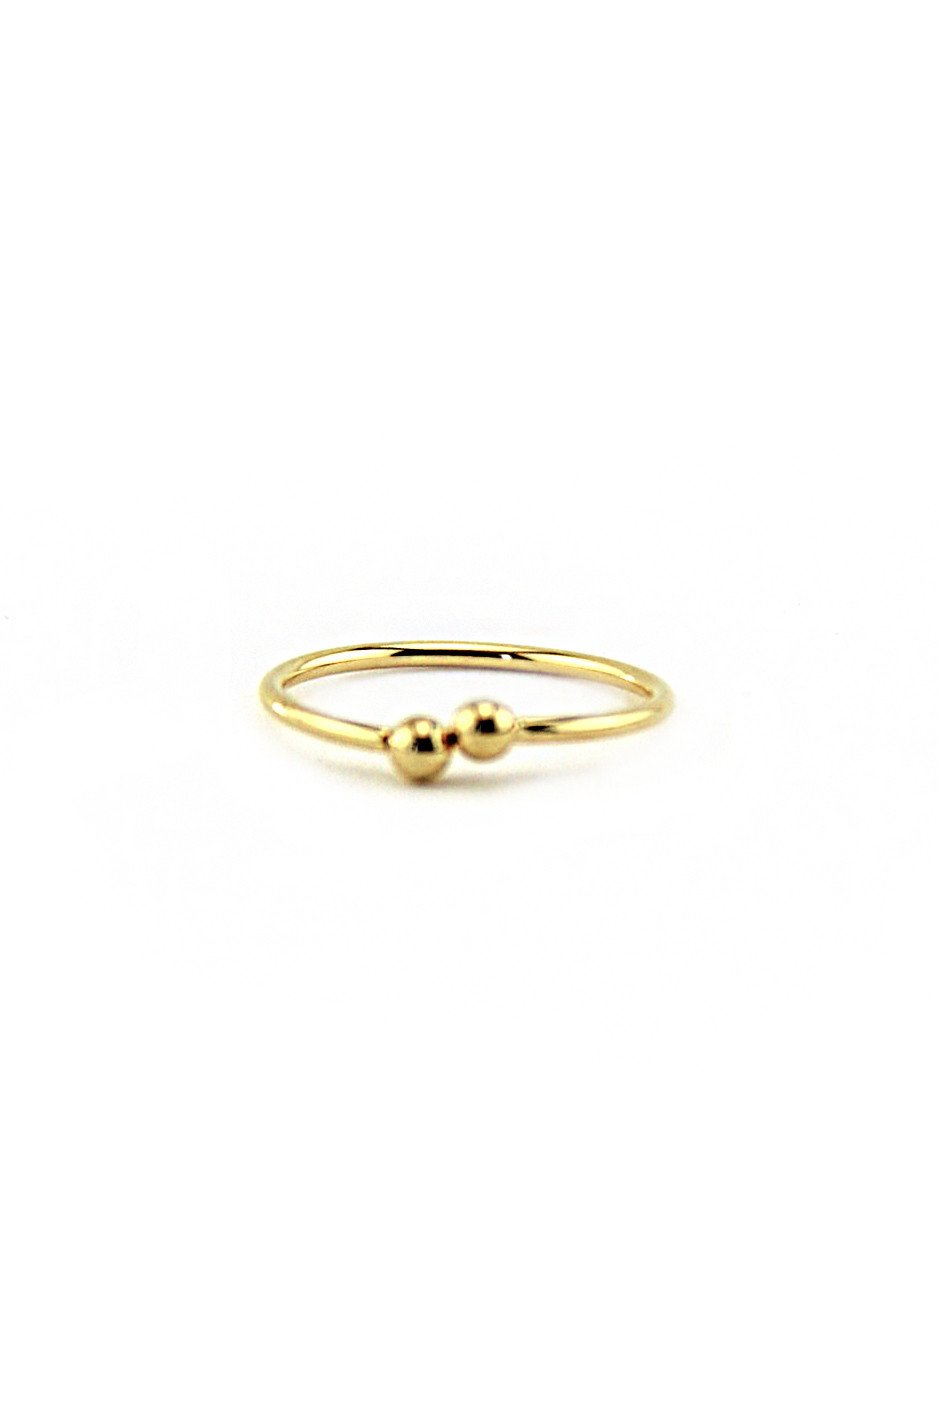 DUAL PETITE ALL TO BALL RING - Gold - Haute & Rebellious